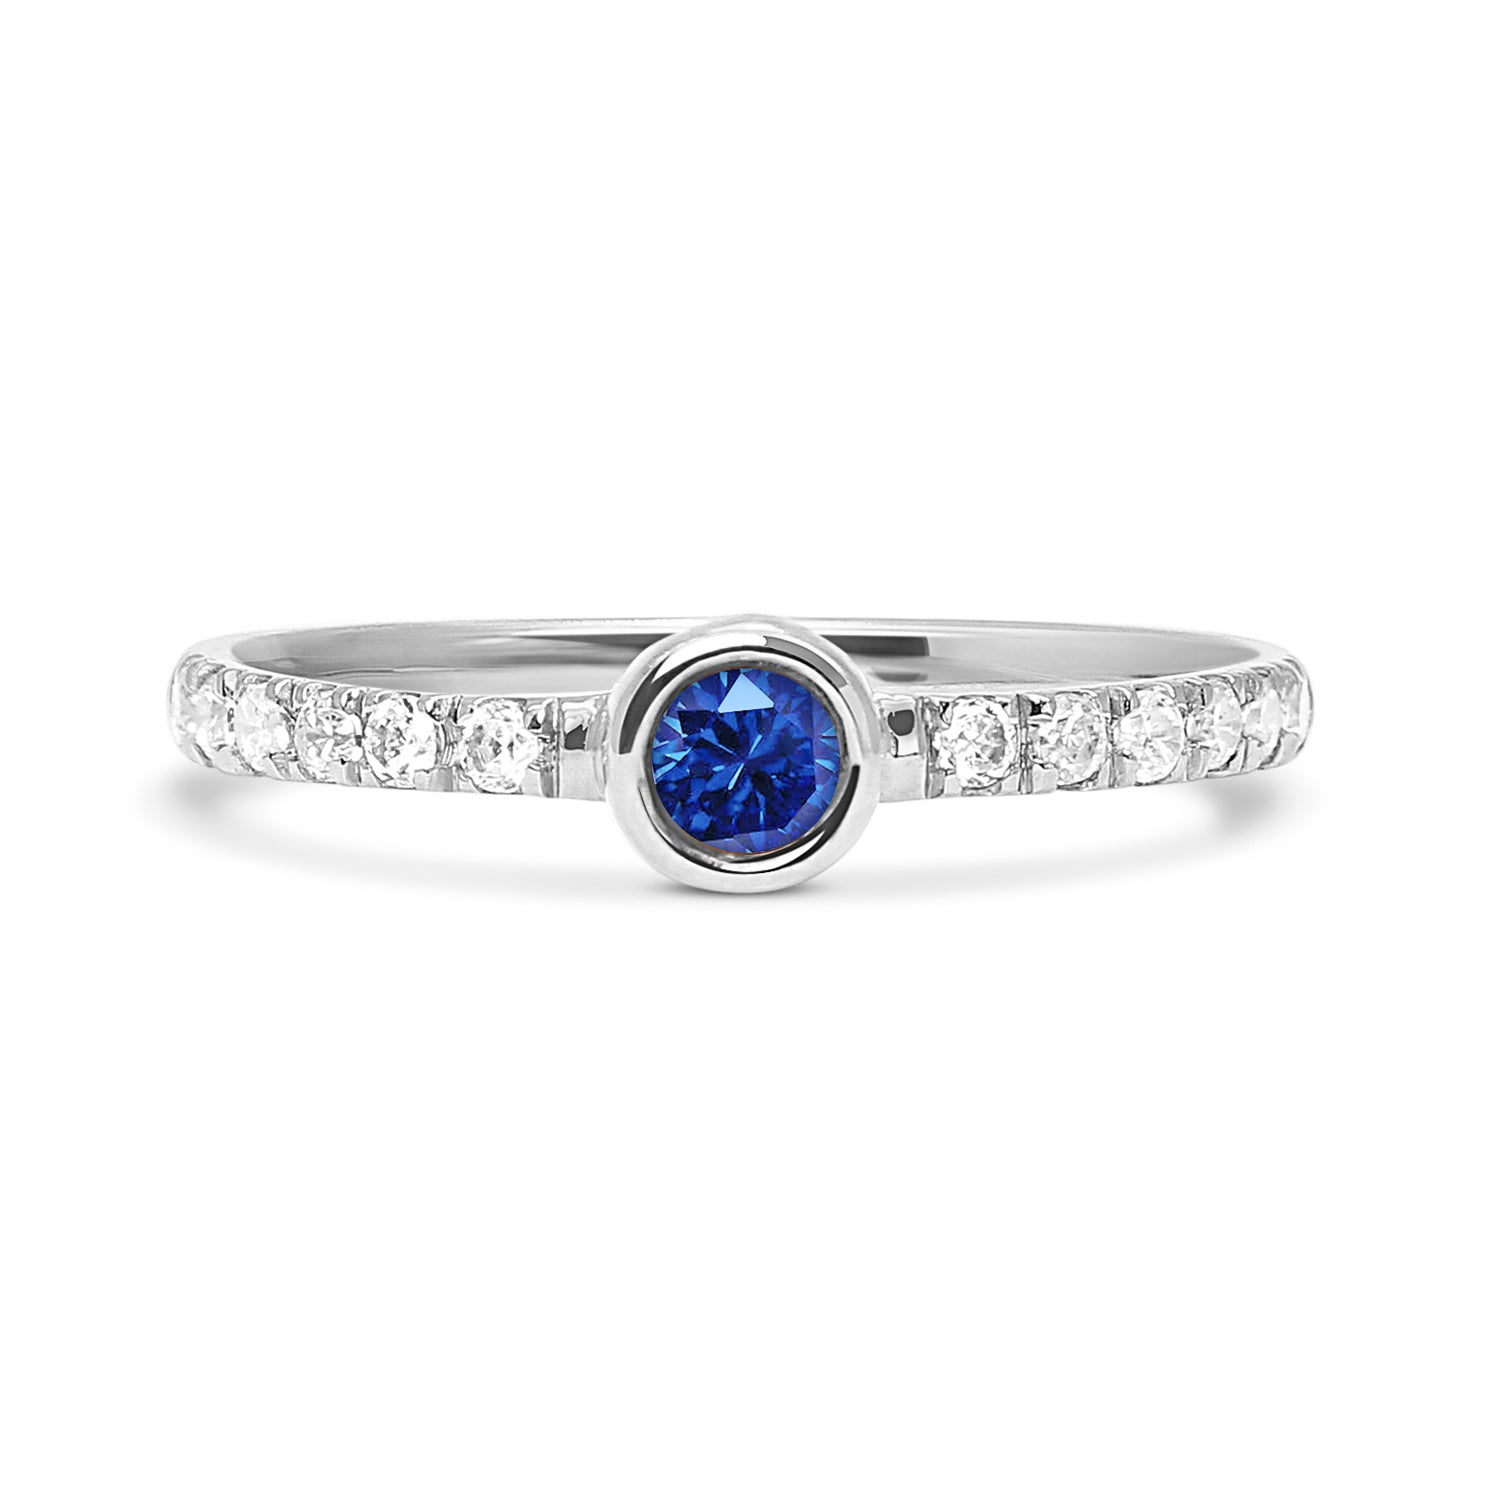 Hera Peacock Ethical Diamond Engagement Ring, Platinum